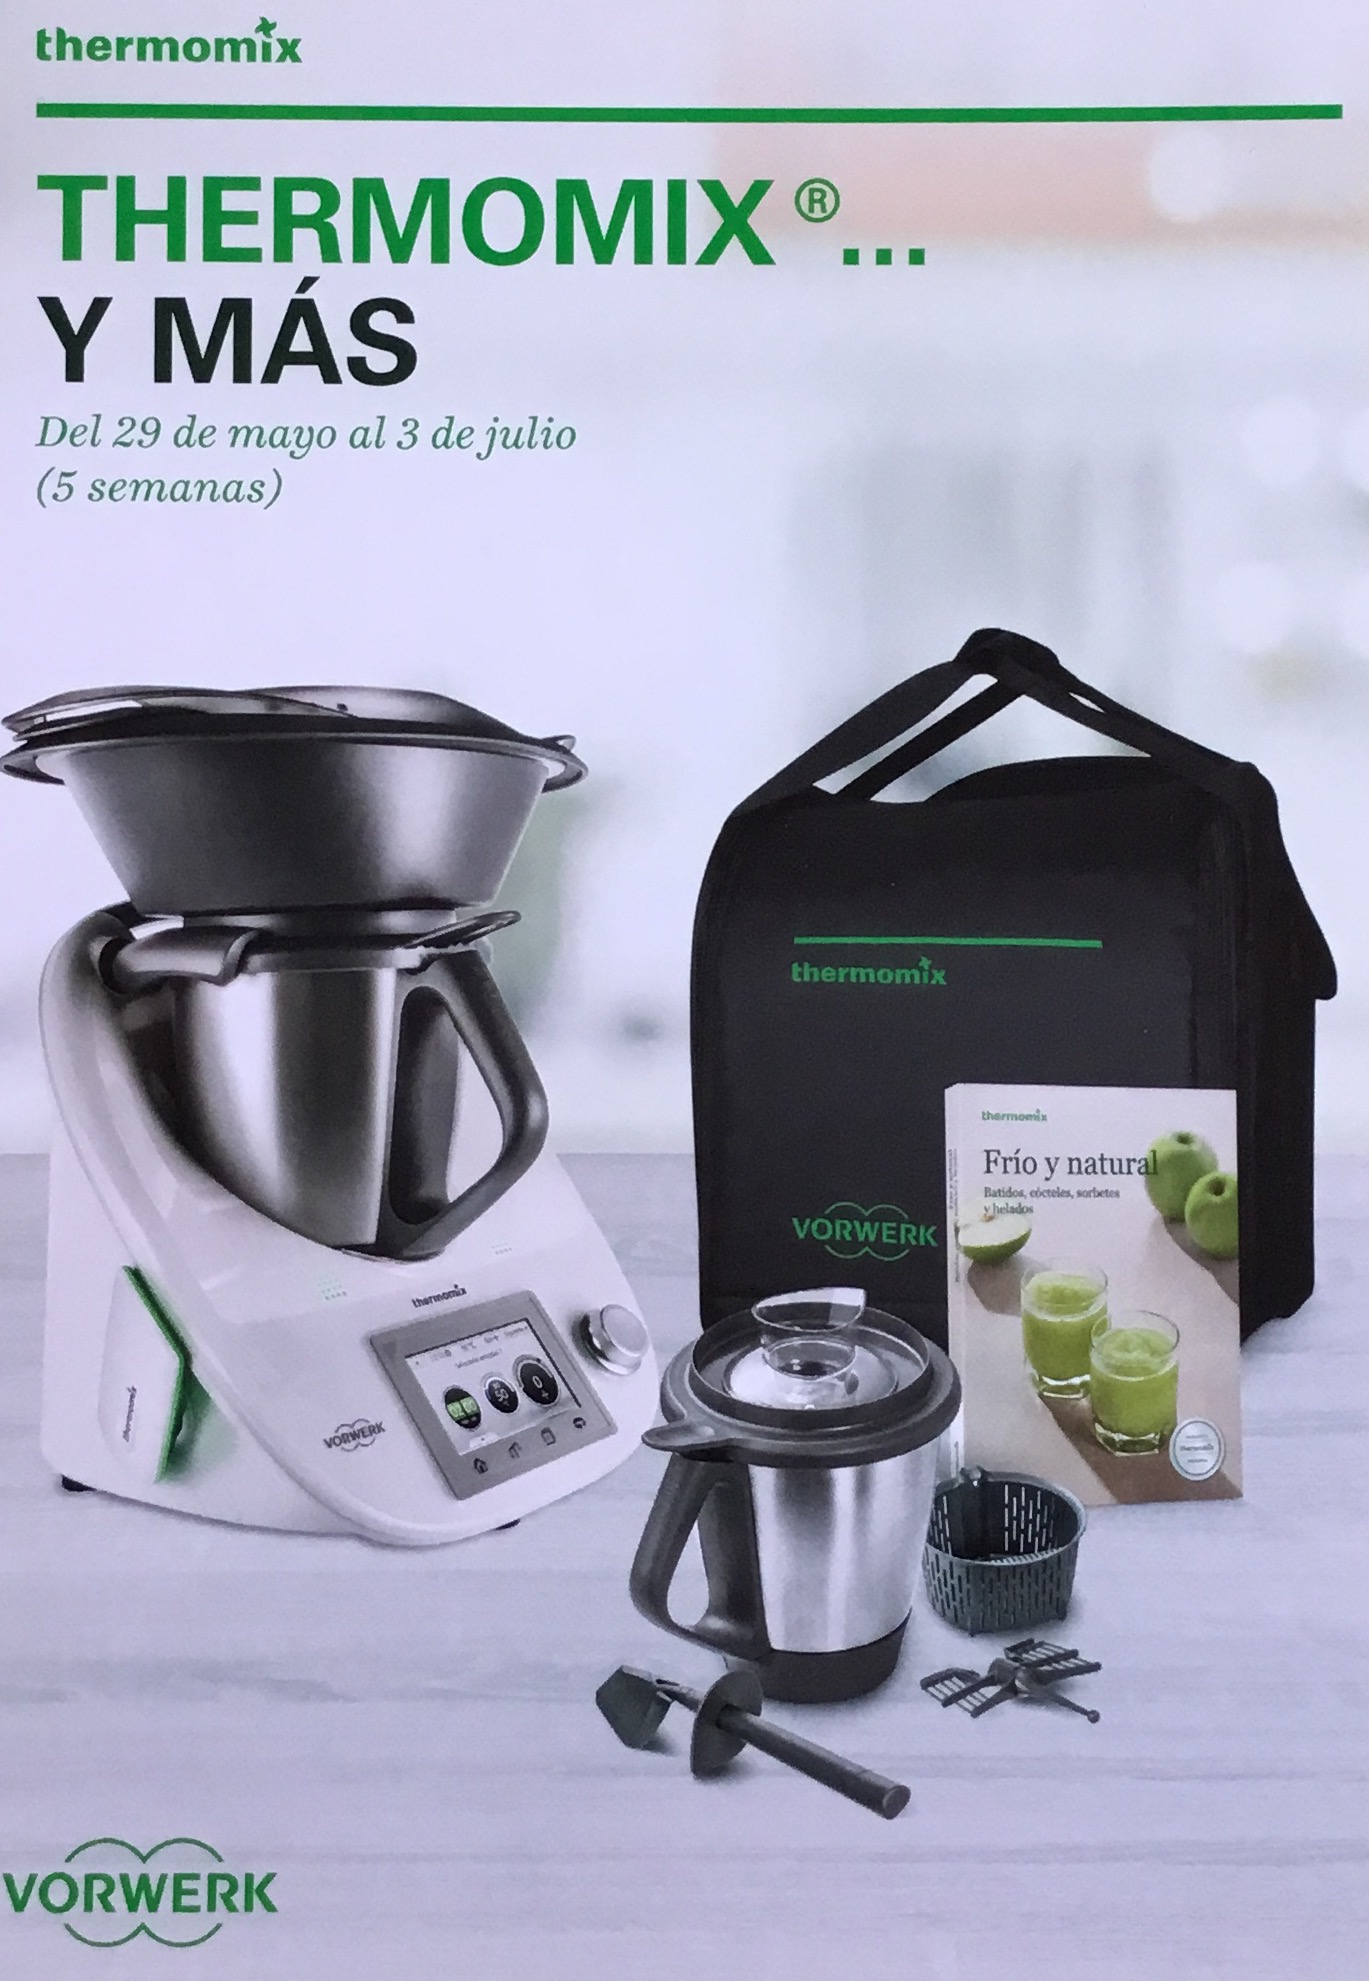 Thermomix® al 0% de interés